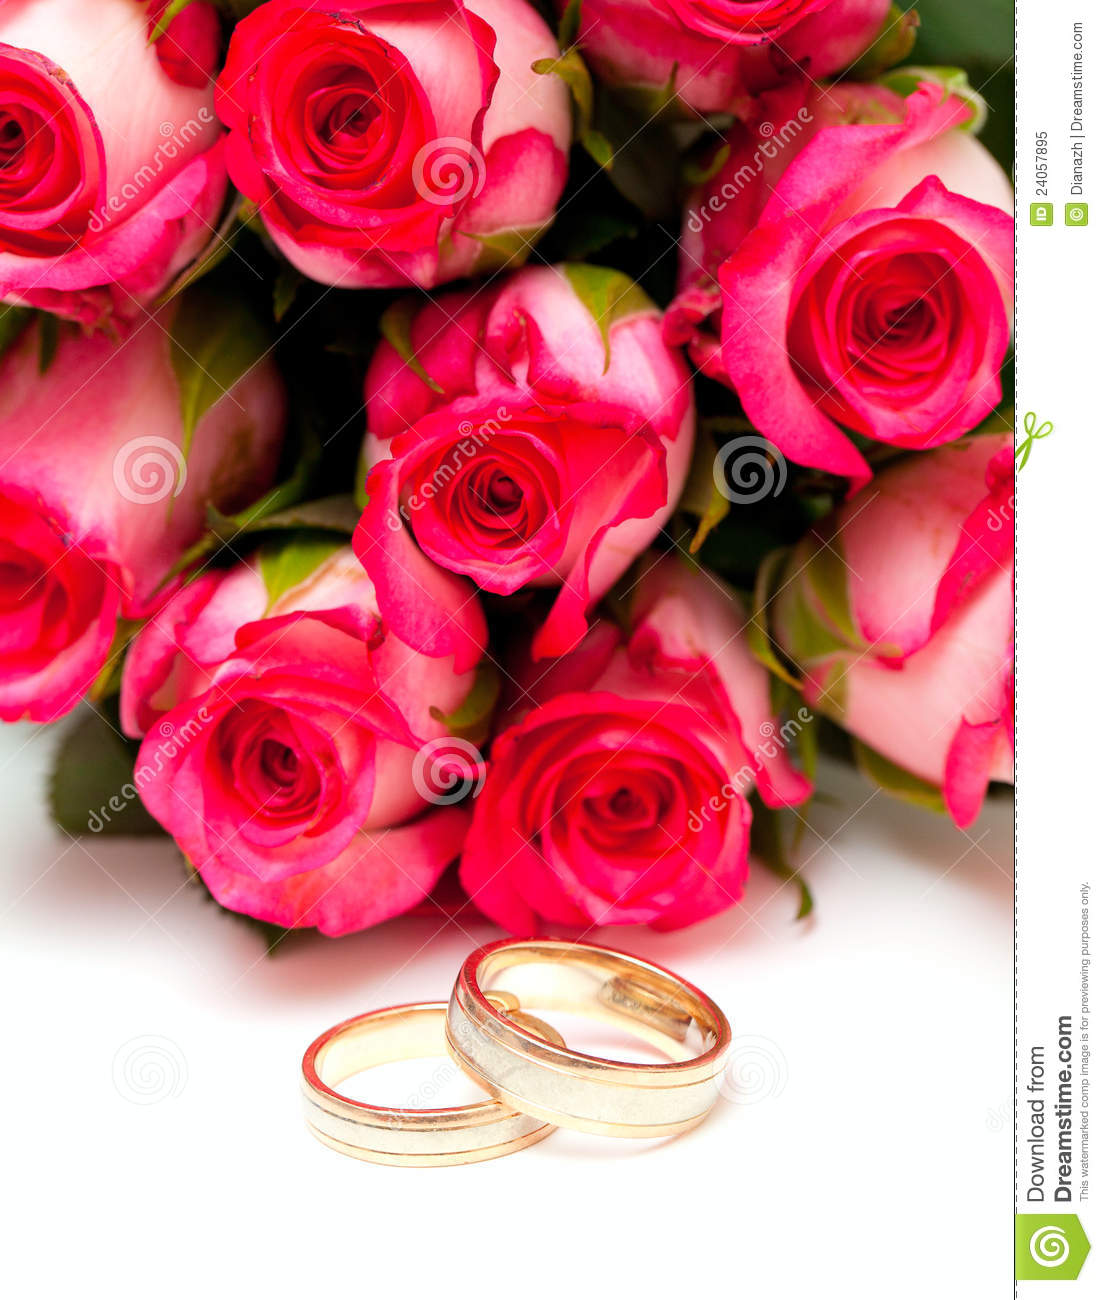 royalty free stock photo pink roses wedding rings isolated white image pink wedding rings Pink roses and wedding rings isolated on white